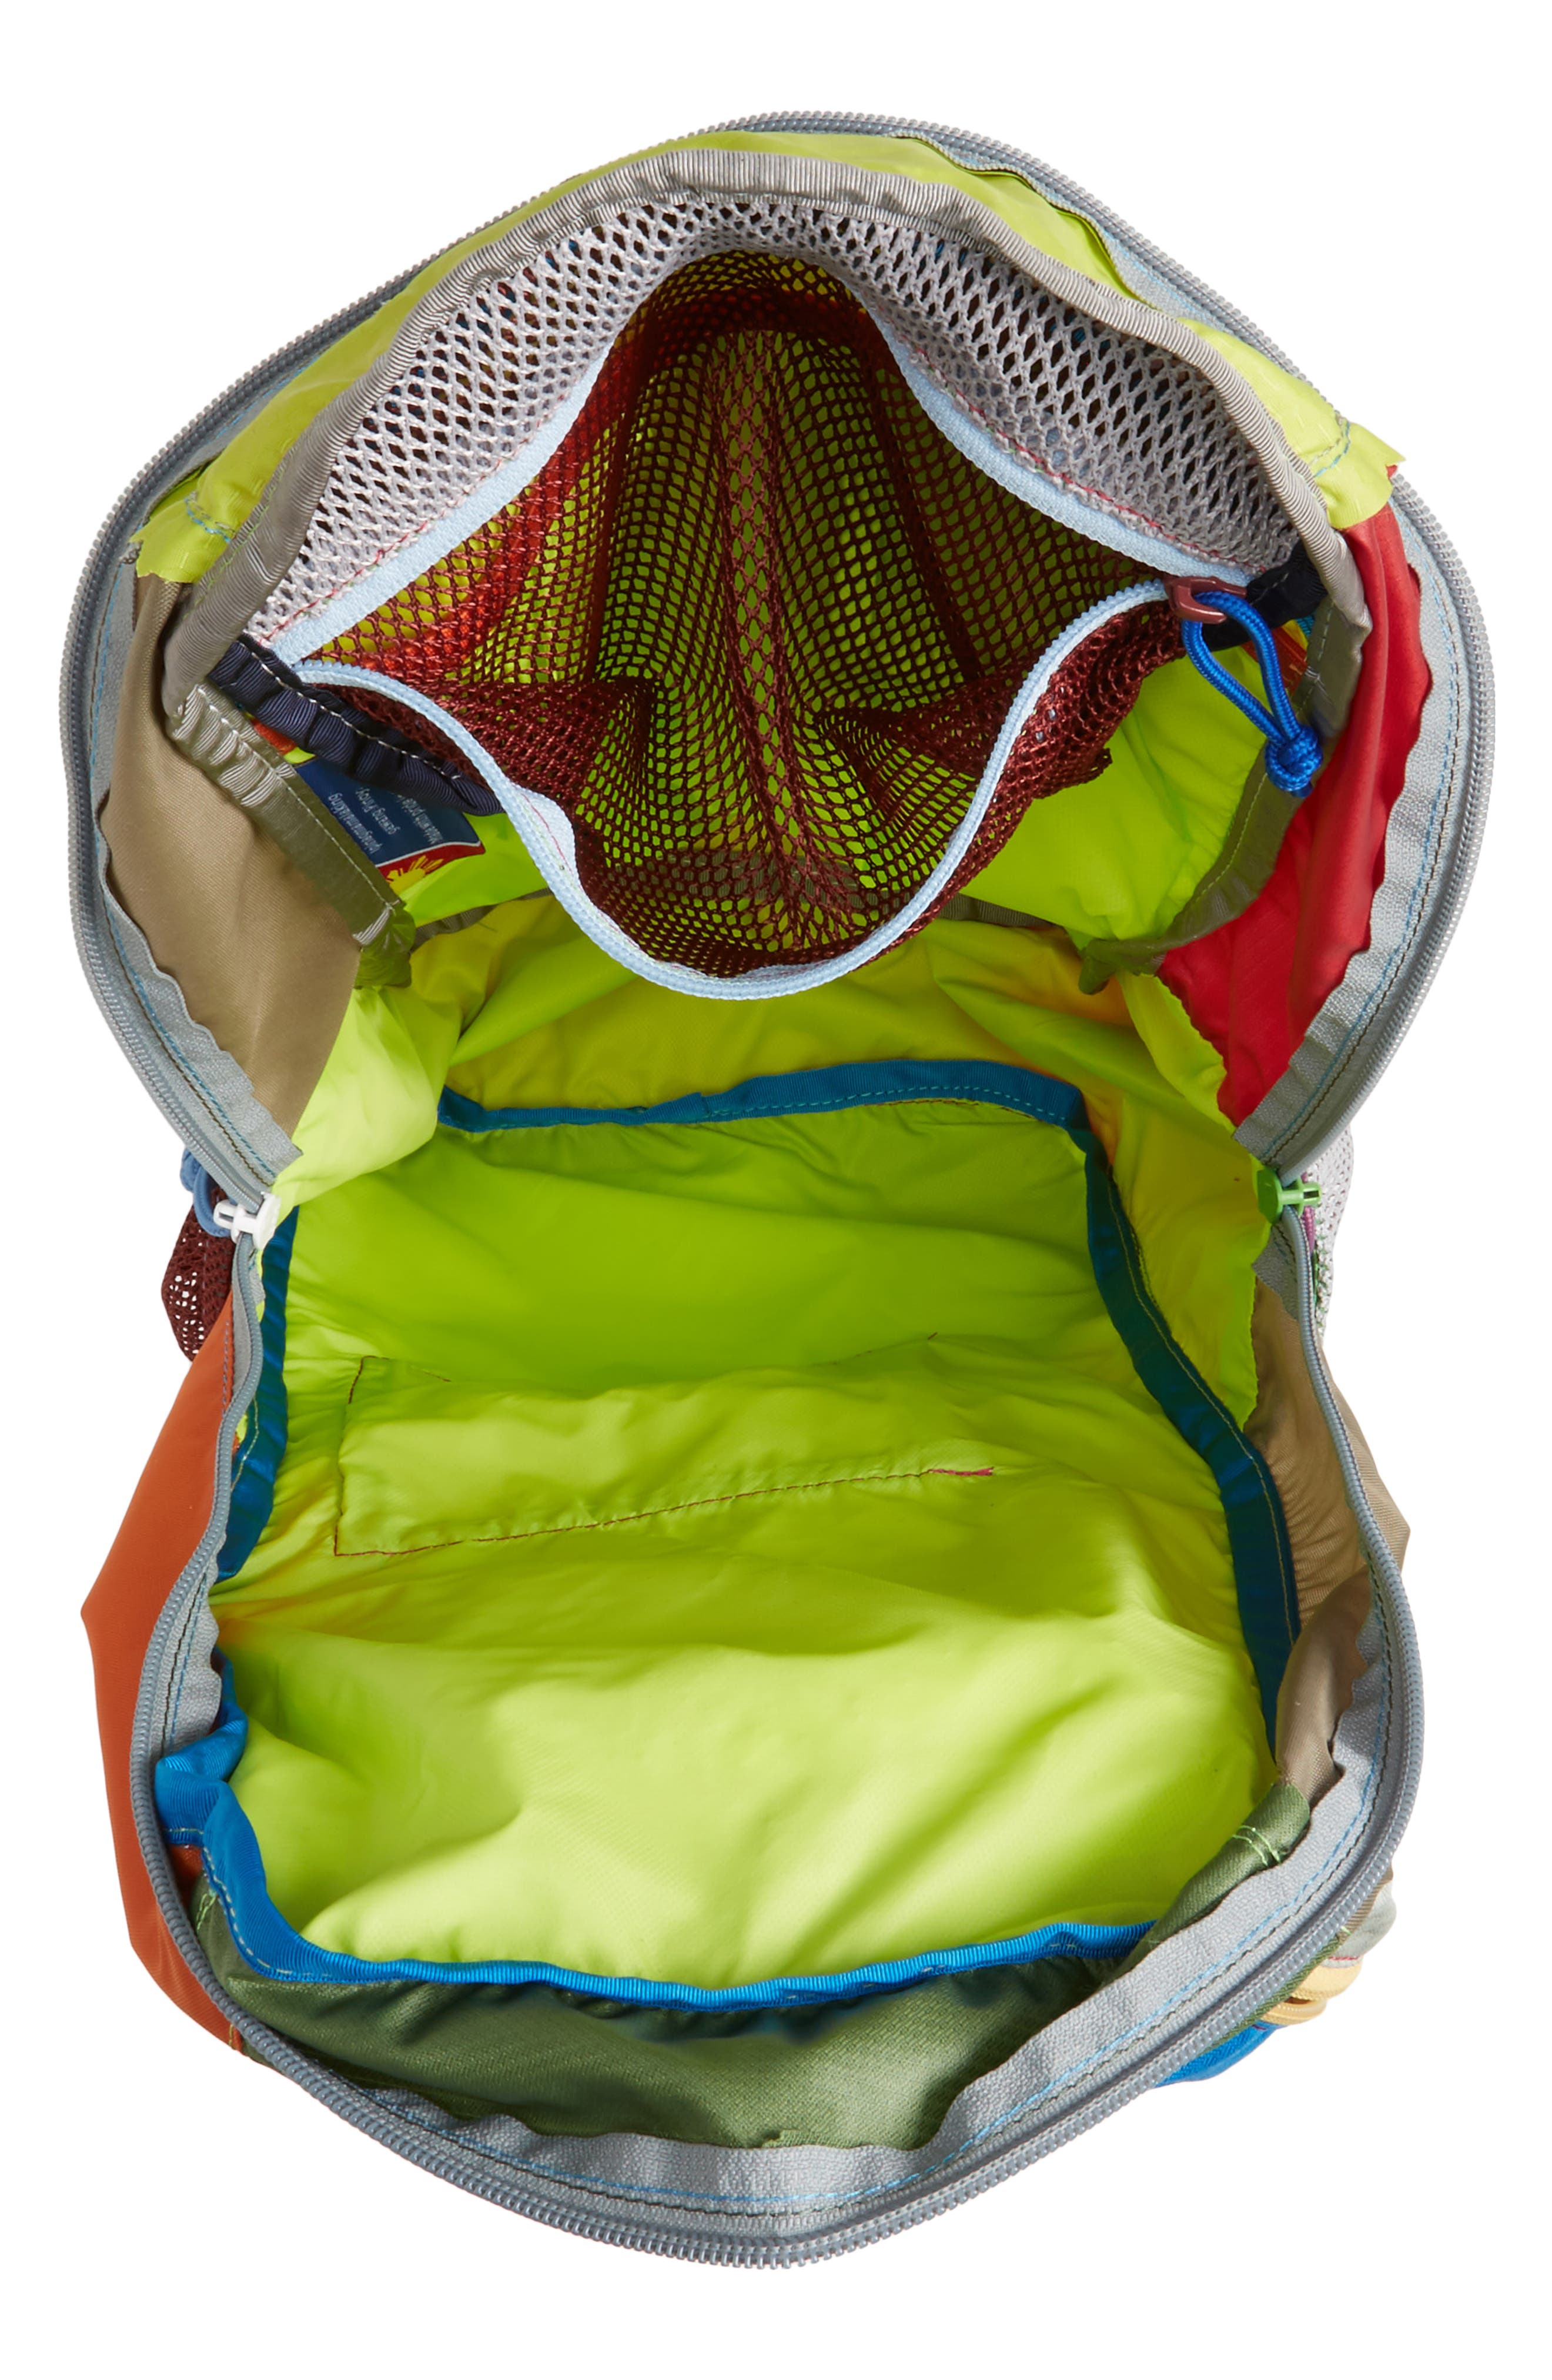 Batac Del Día One of a Kind Ripstop Nylon Daypack,                             Alternate thumbnail 4, color,                             960